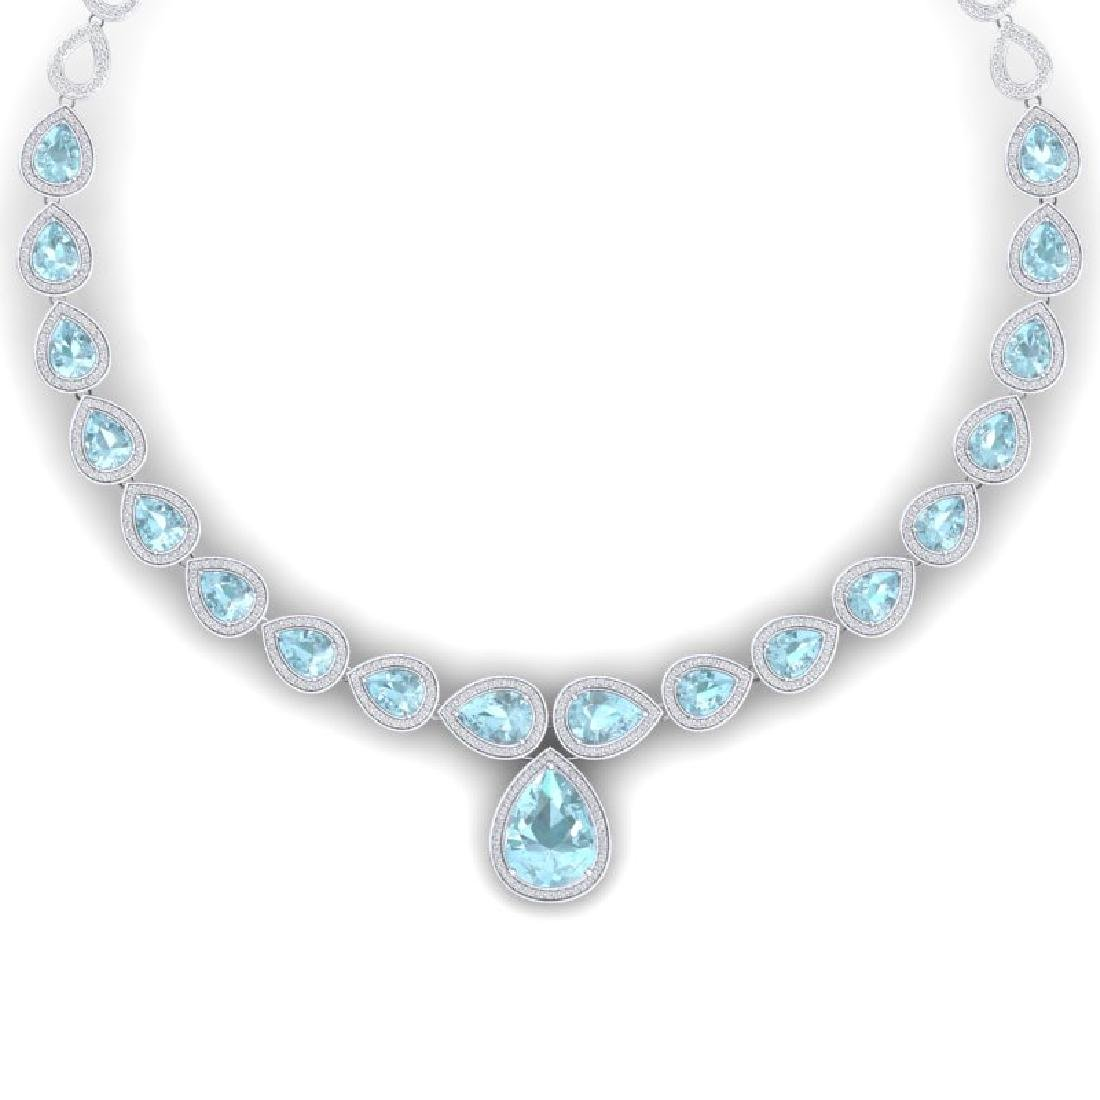 54 CTW Royalty Sky Topaz & VS Diamond Necklace 18K